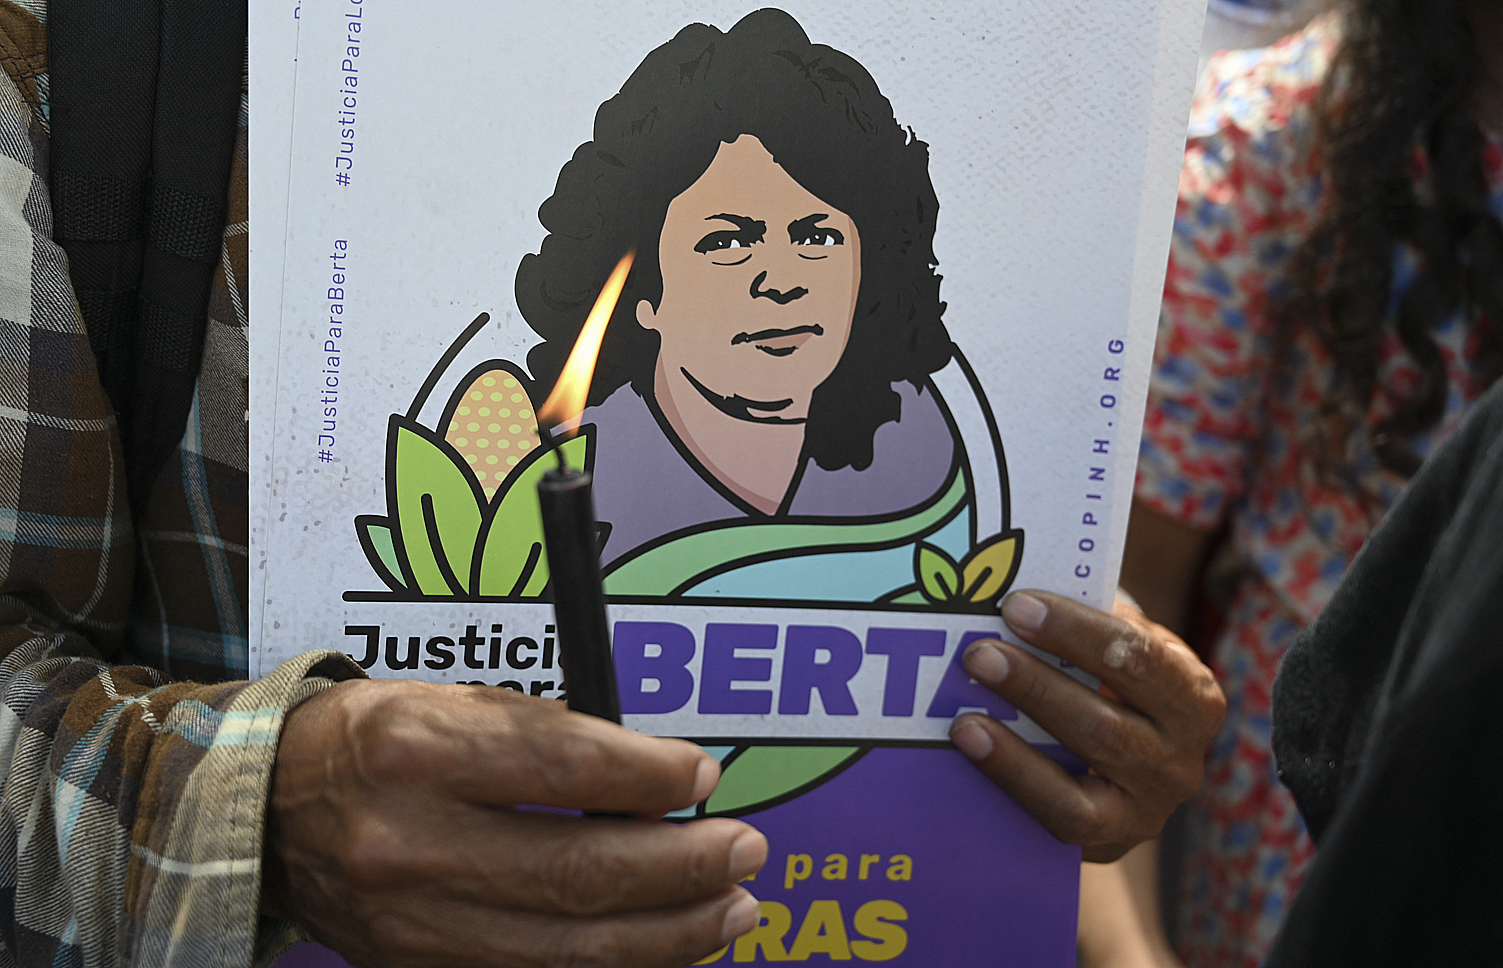 A member of the Civic Council of Popular and Indigenous Organizations of Honduras (COPINH) holds a candle while waiting for the sentence of David Castillo, president of Desarrollos Energeticos S.A (DESA), to be read, regarding the murder of Honduran environmentalist and indigenous leader Berta Caceres (in poster), in Tegucigalpa on July 5, 2021. - Castillo was found guilty. (Photo by Orlando SIERRA / AFP)